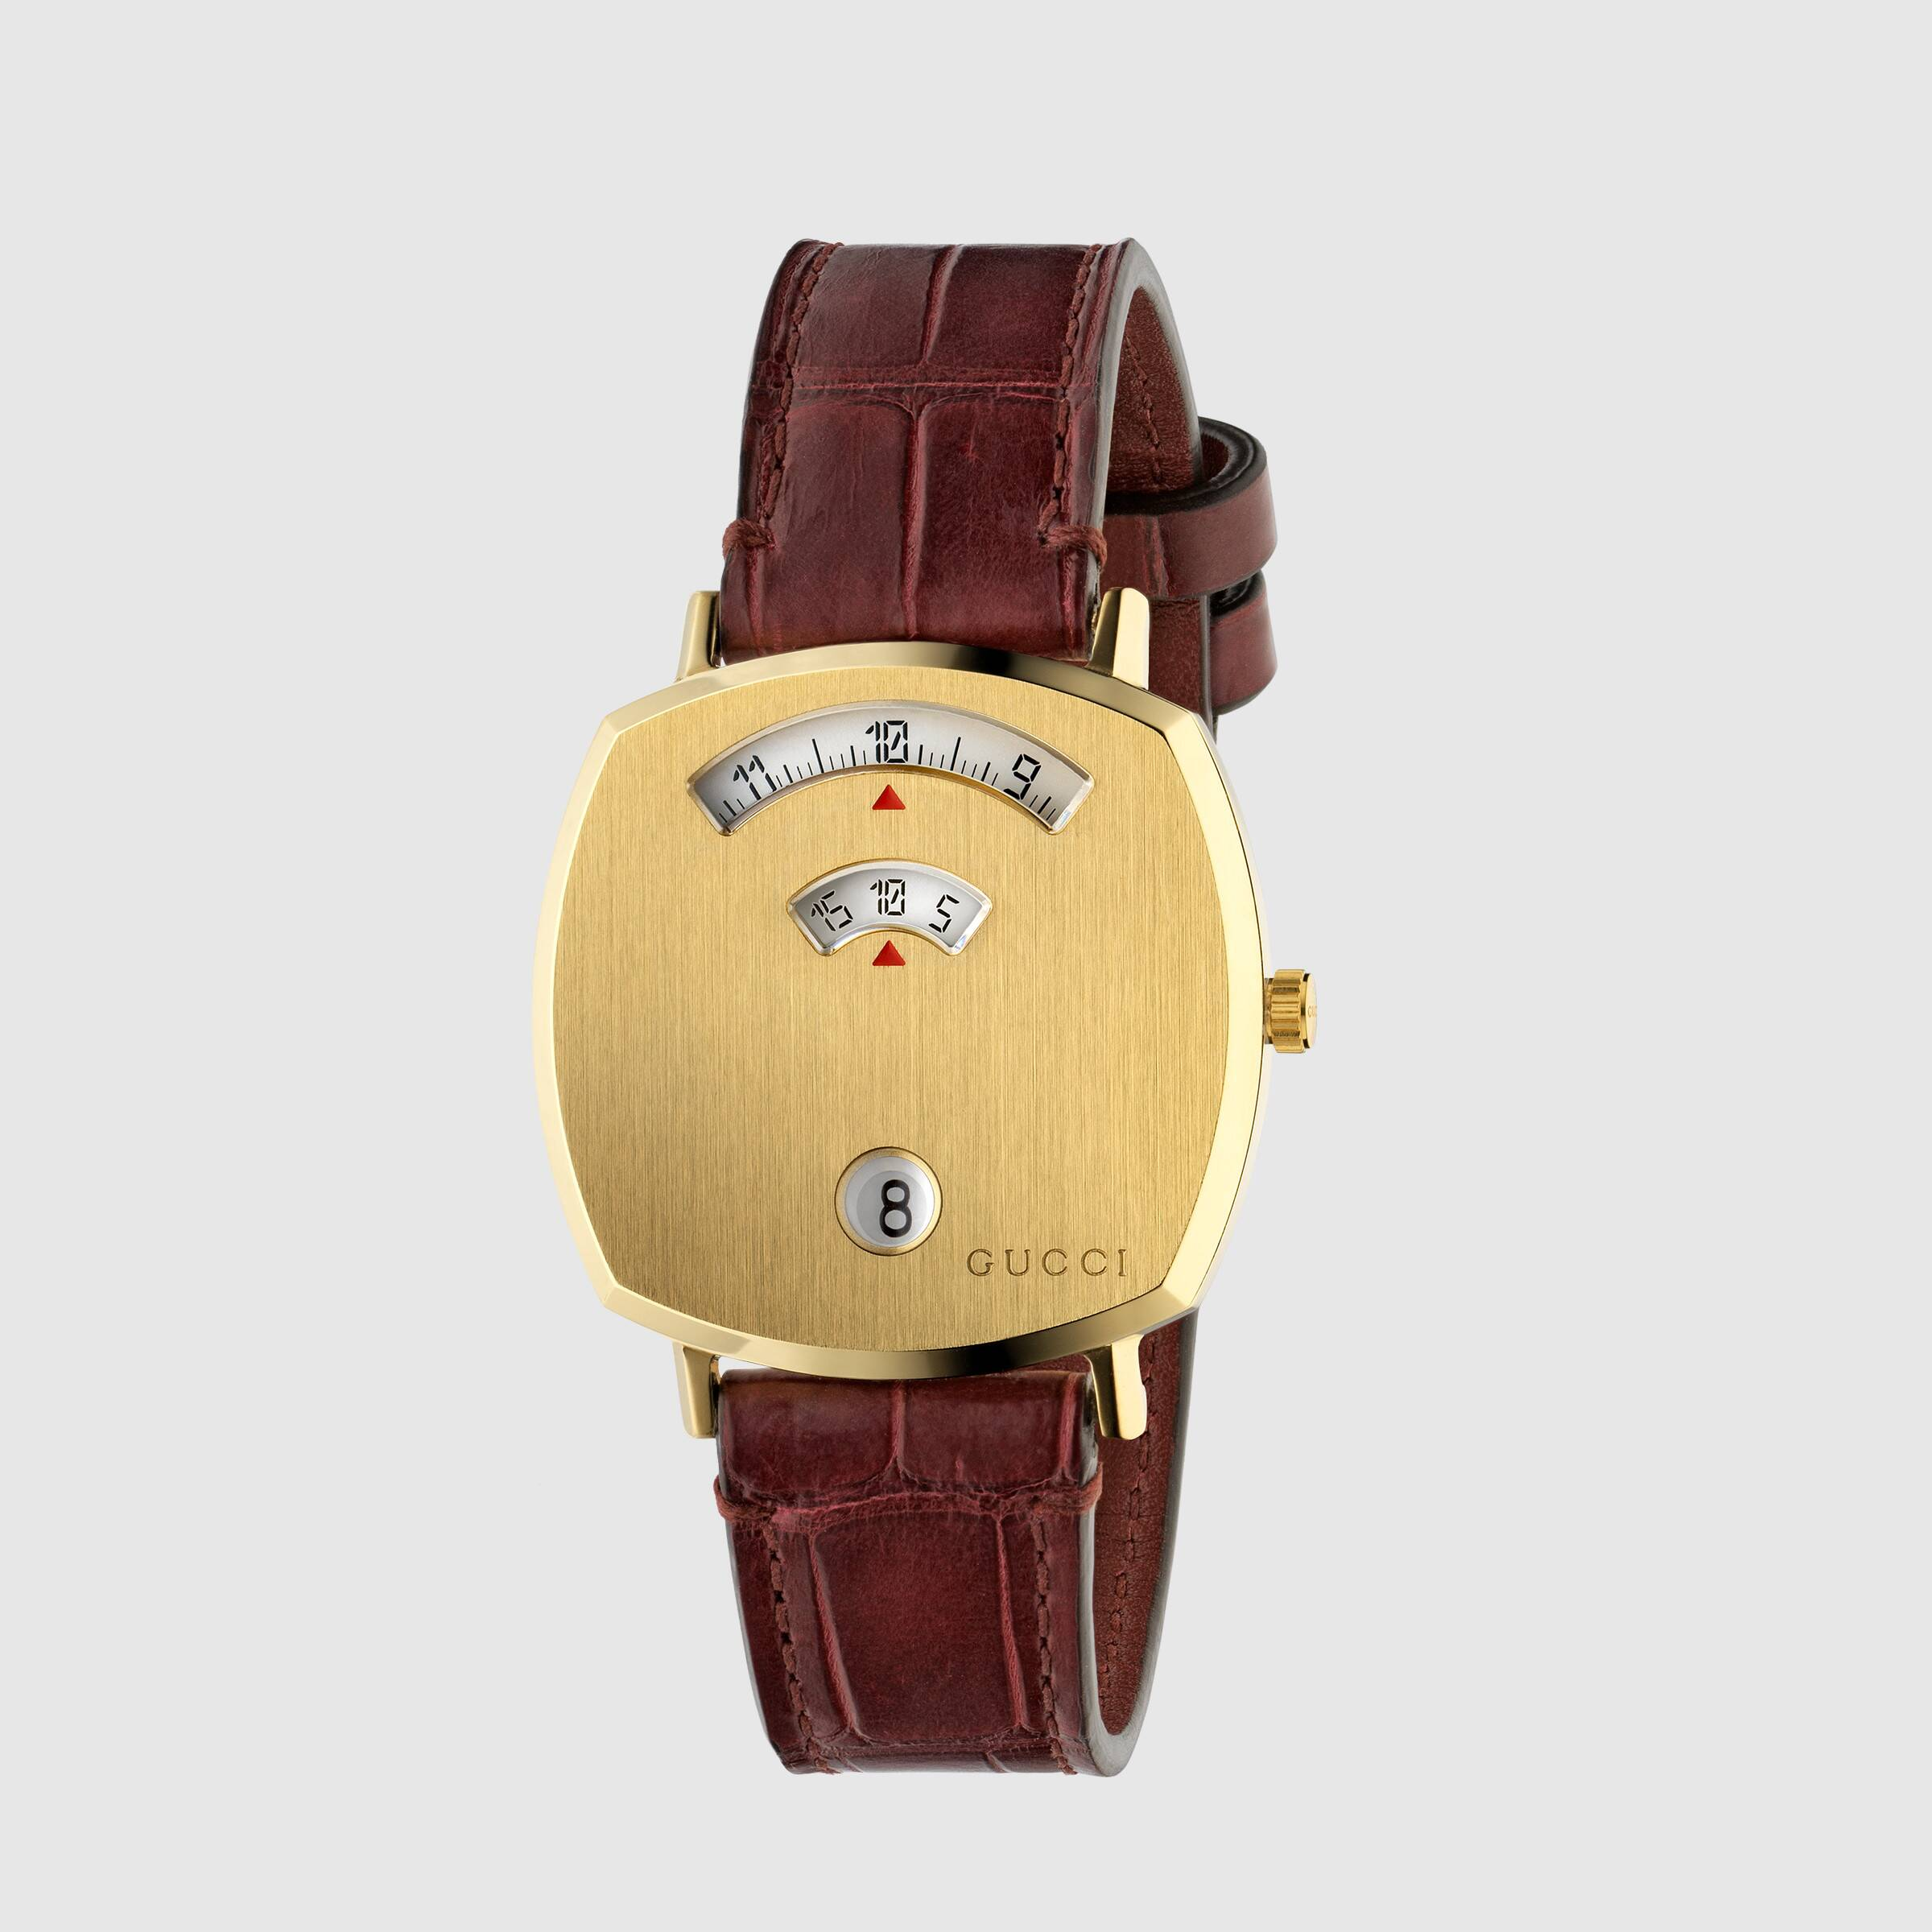 GUCCI - BORDEAUX ALLIGATOR GRIP WATCH 35mm - YA157402